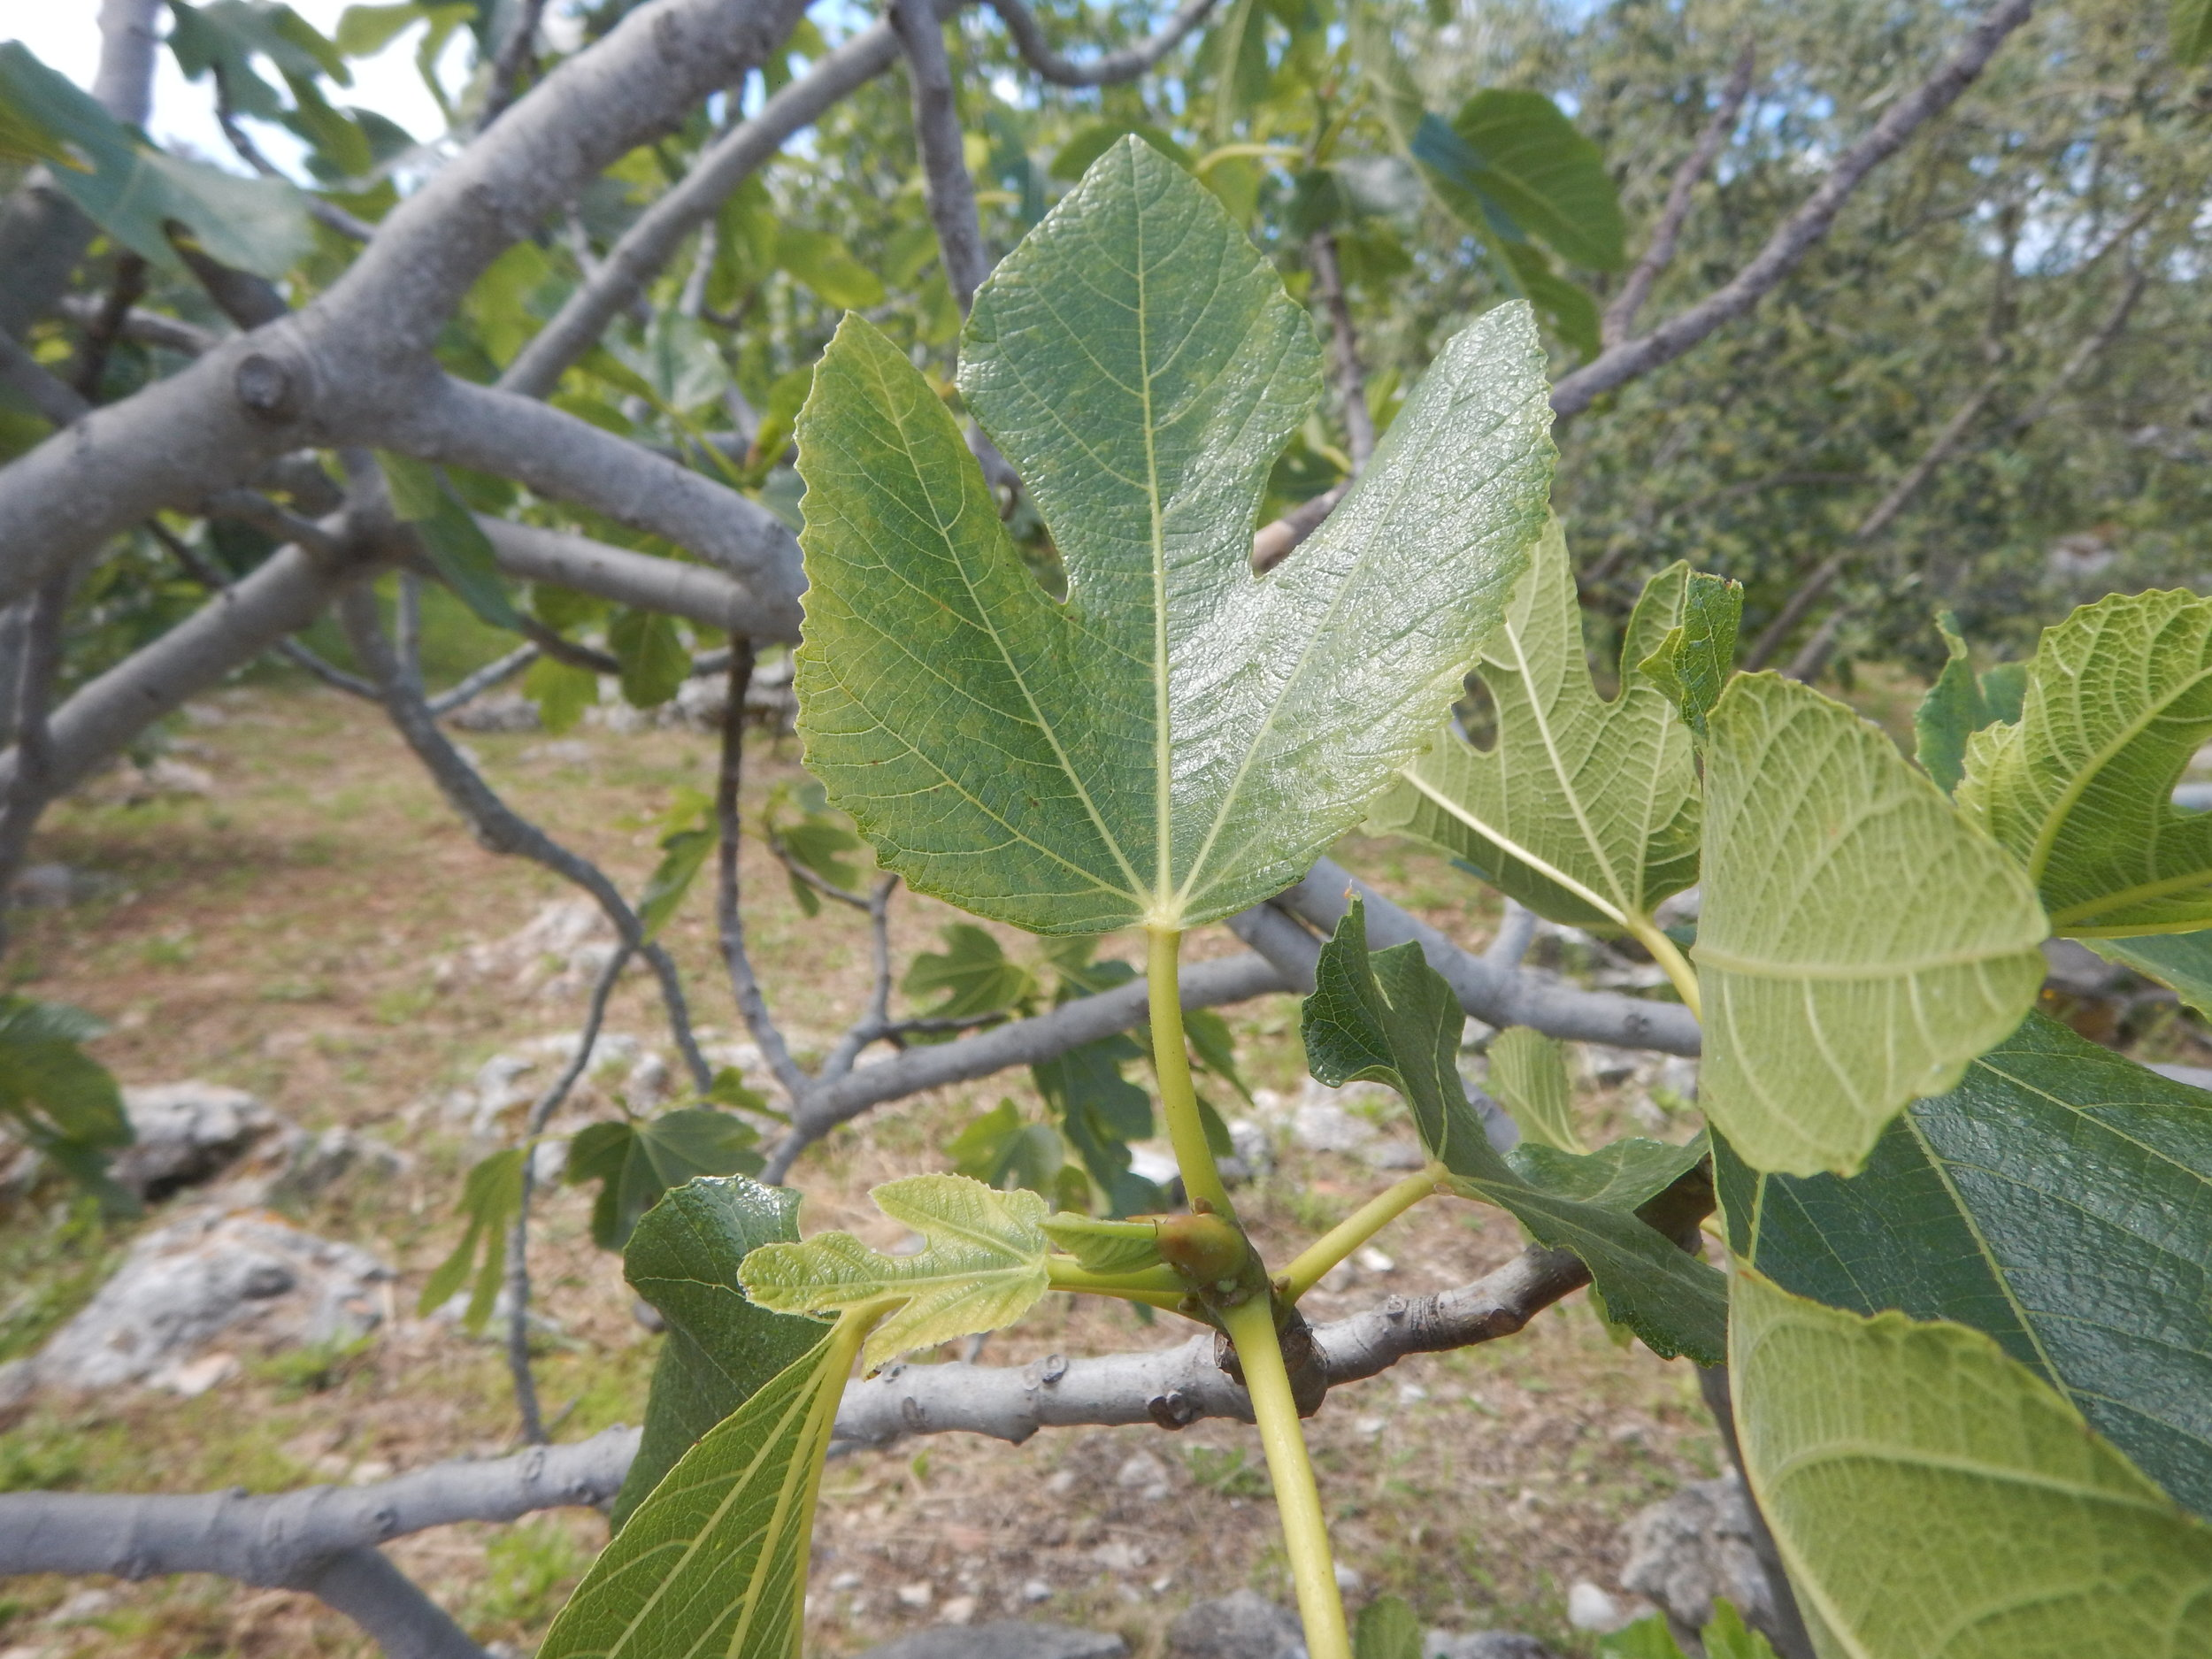 Fig, the edible variety, but not until the end of summer.